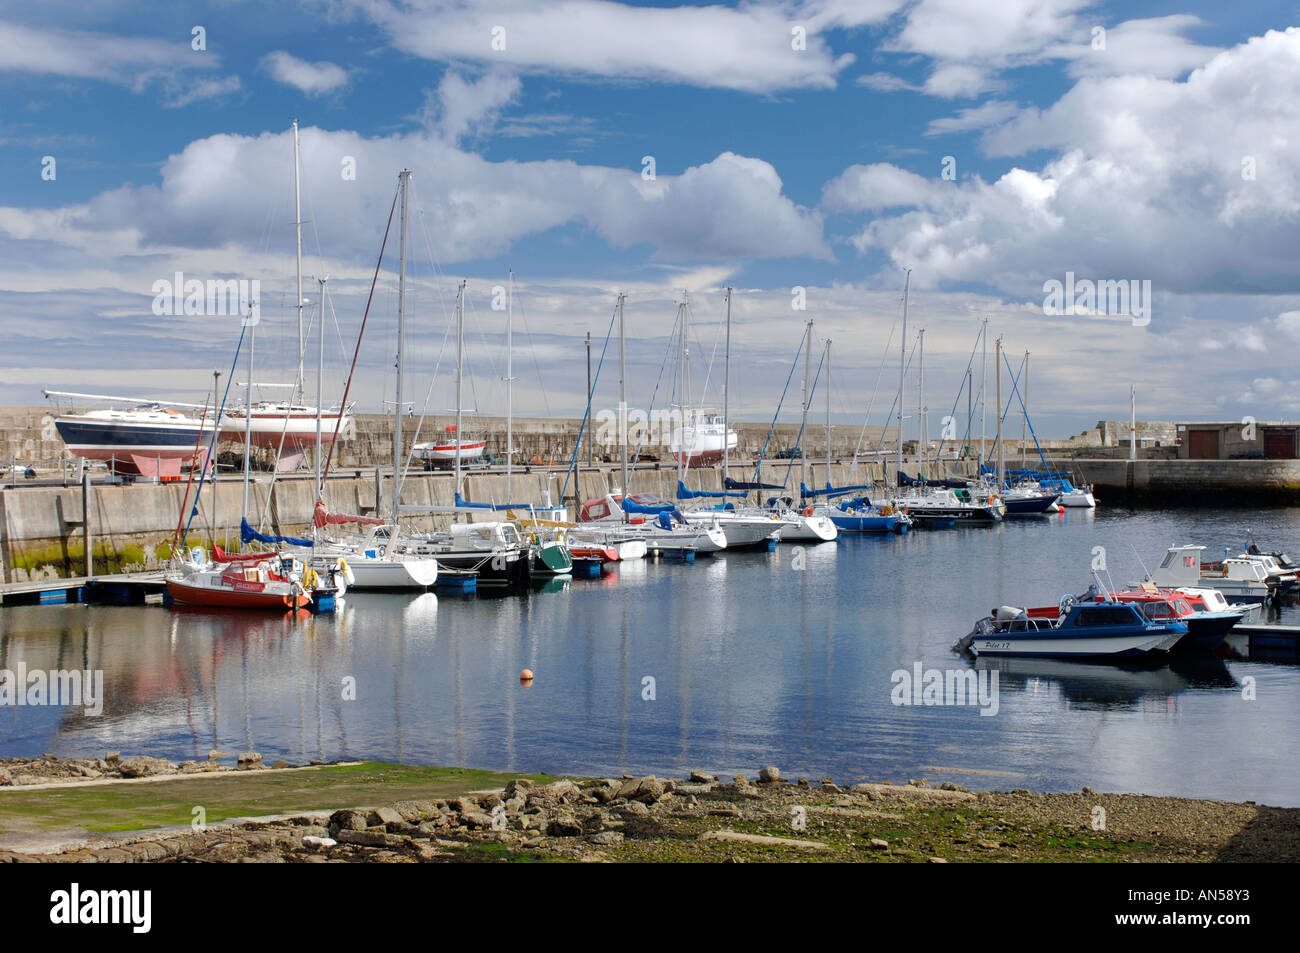 Lossiemouth harbour shared by both fishing and pleasure boats. Morayshire. Scotland.  XPL 3221-321 - Stock Image